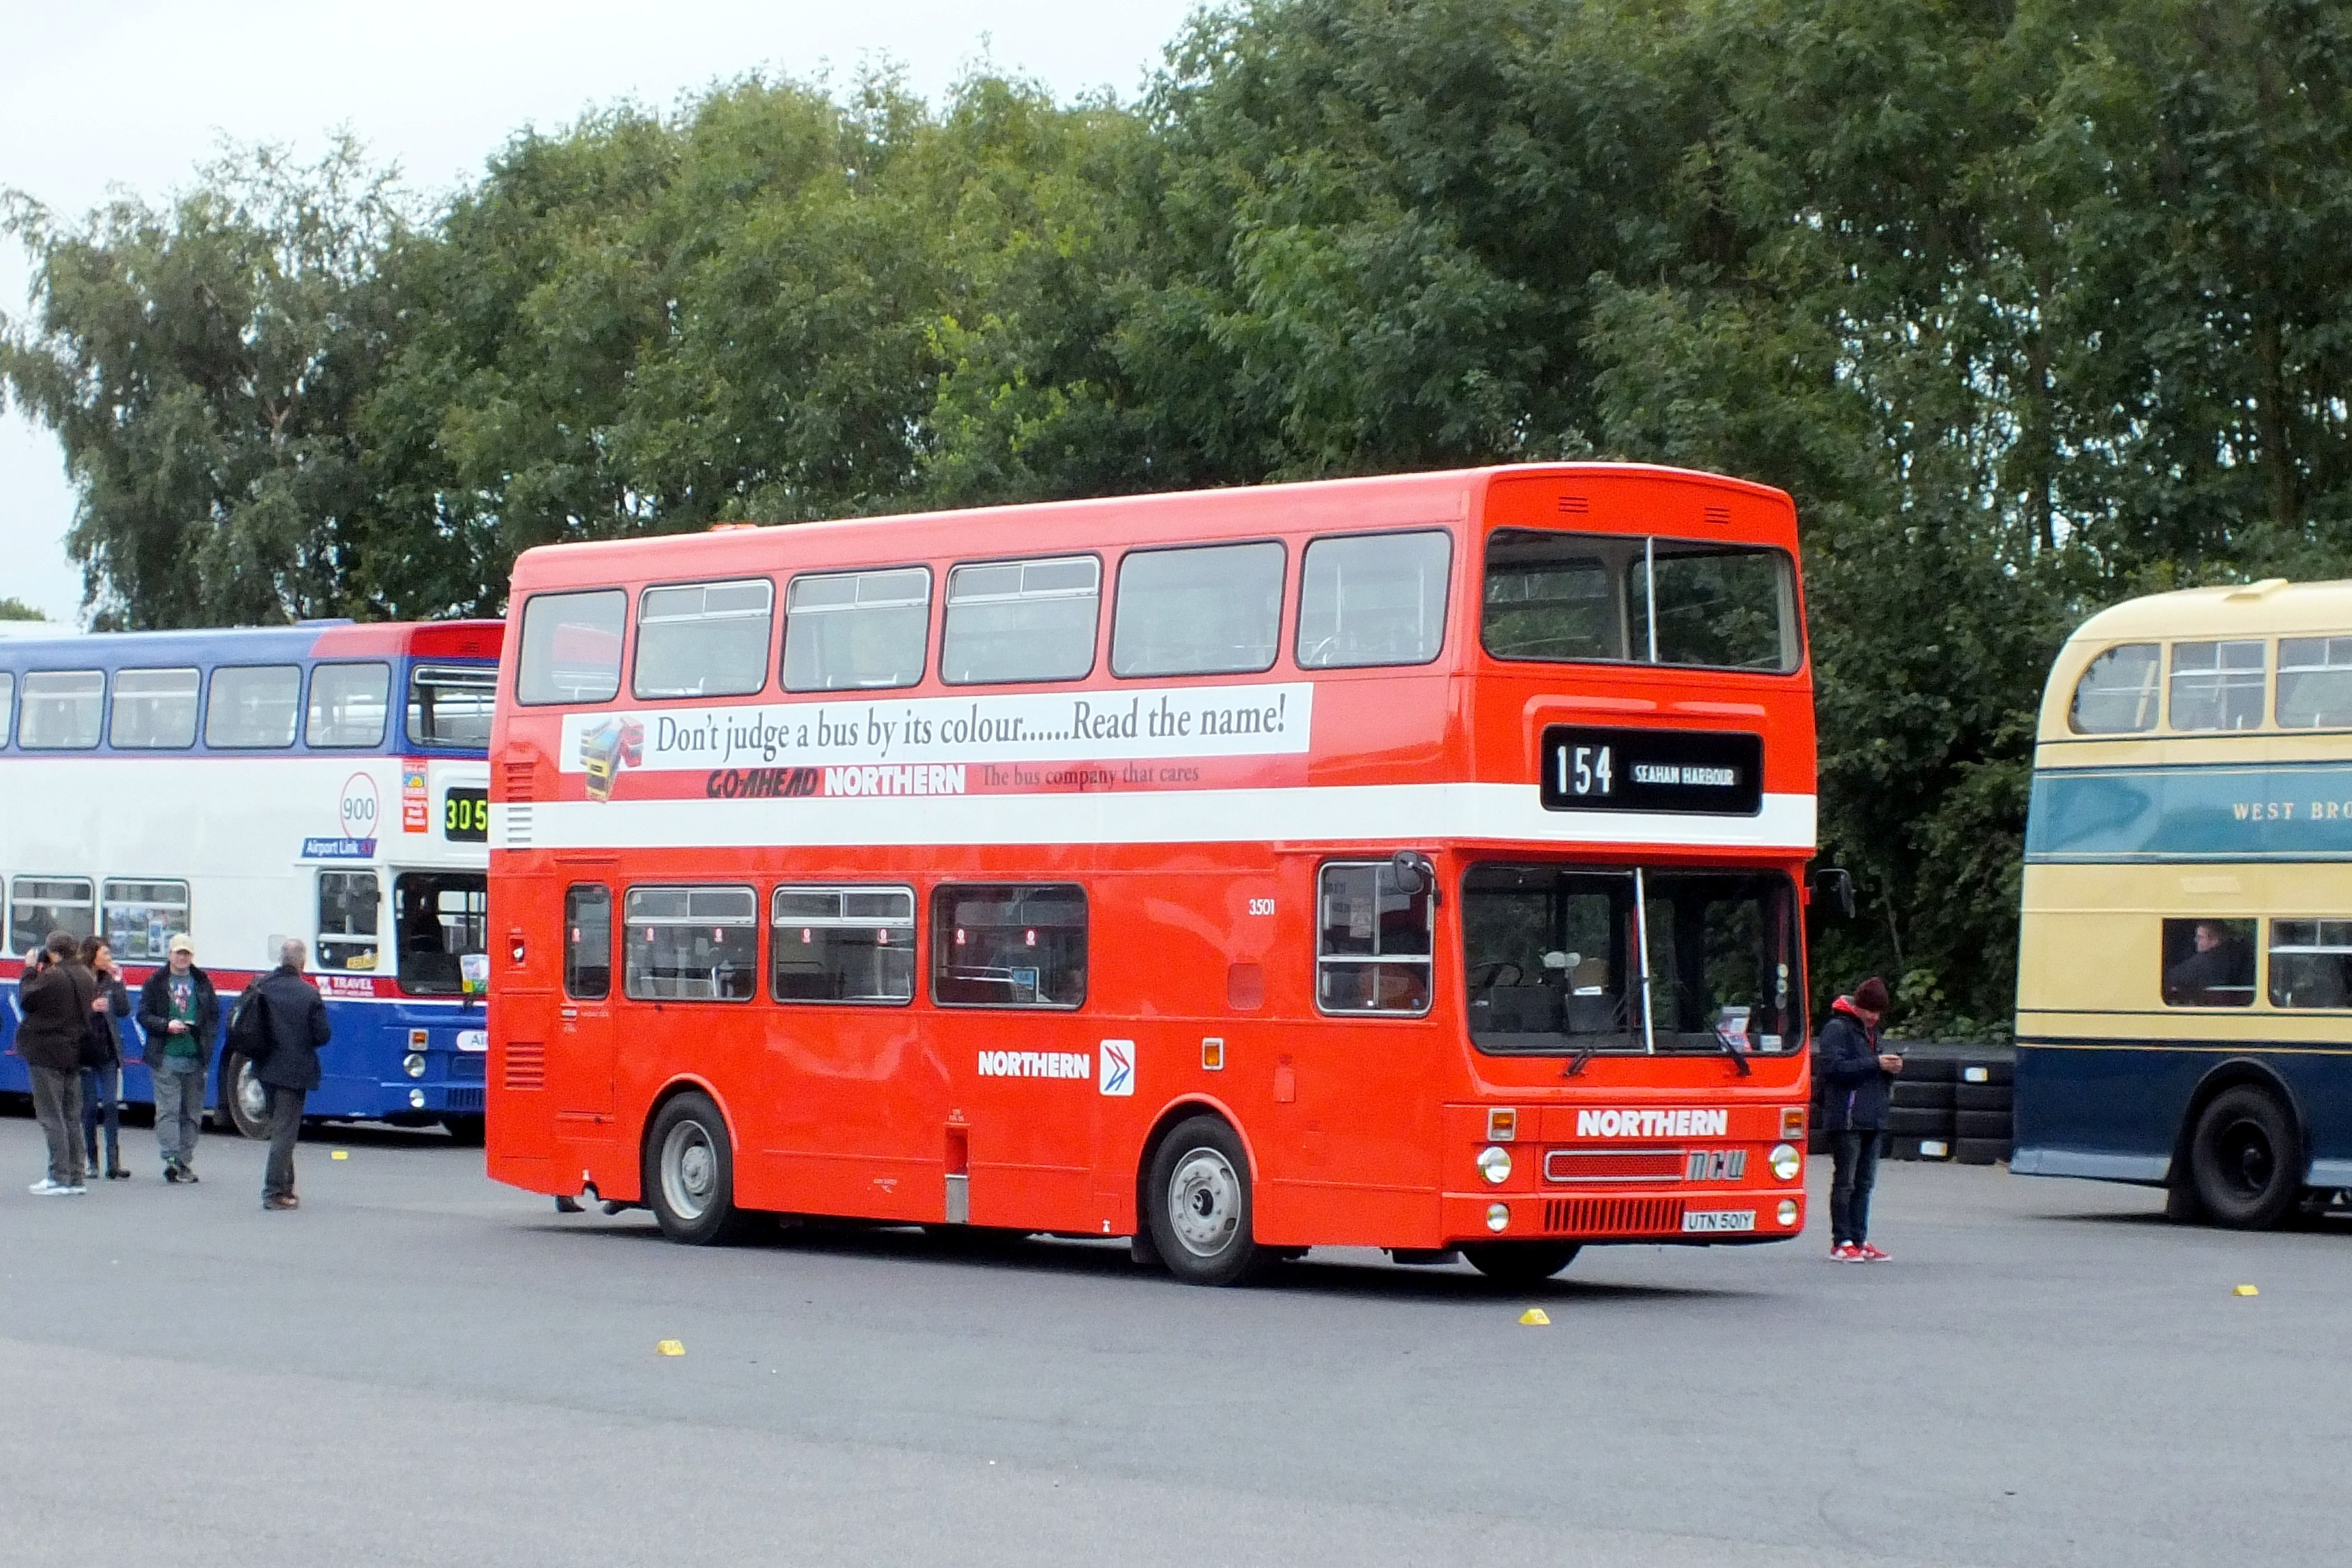 17 September 2017 Showbus, Donington. 356.jpg